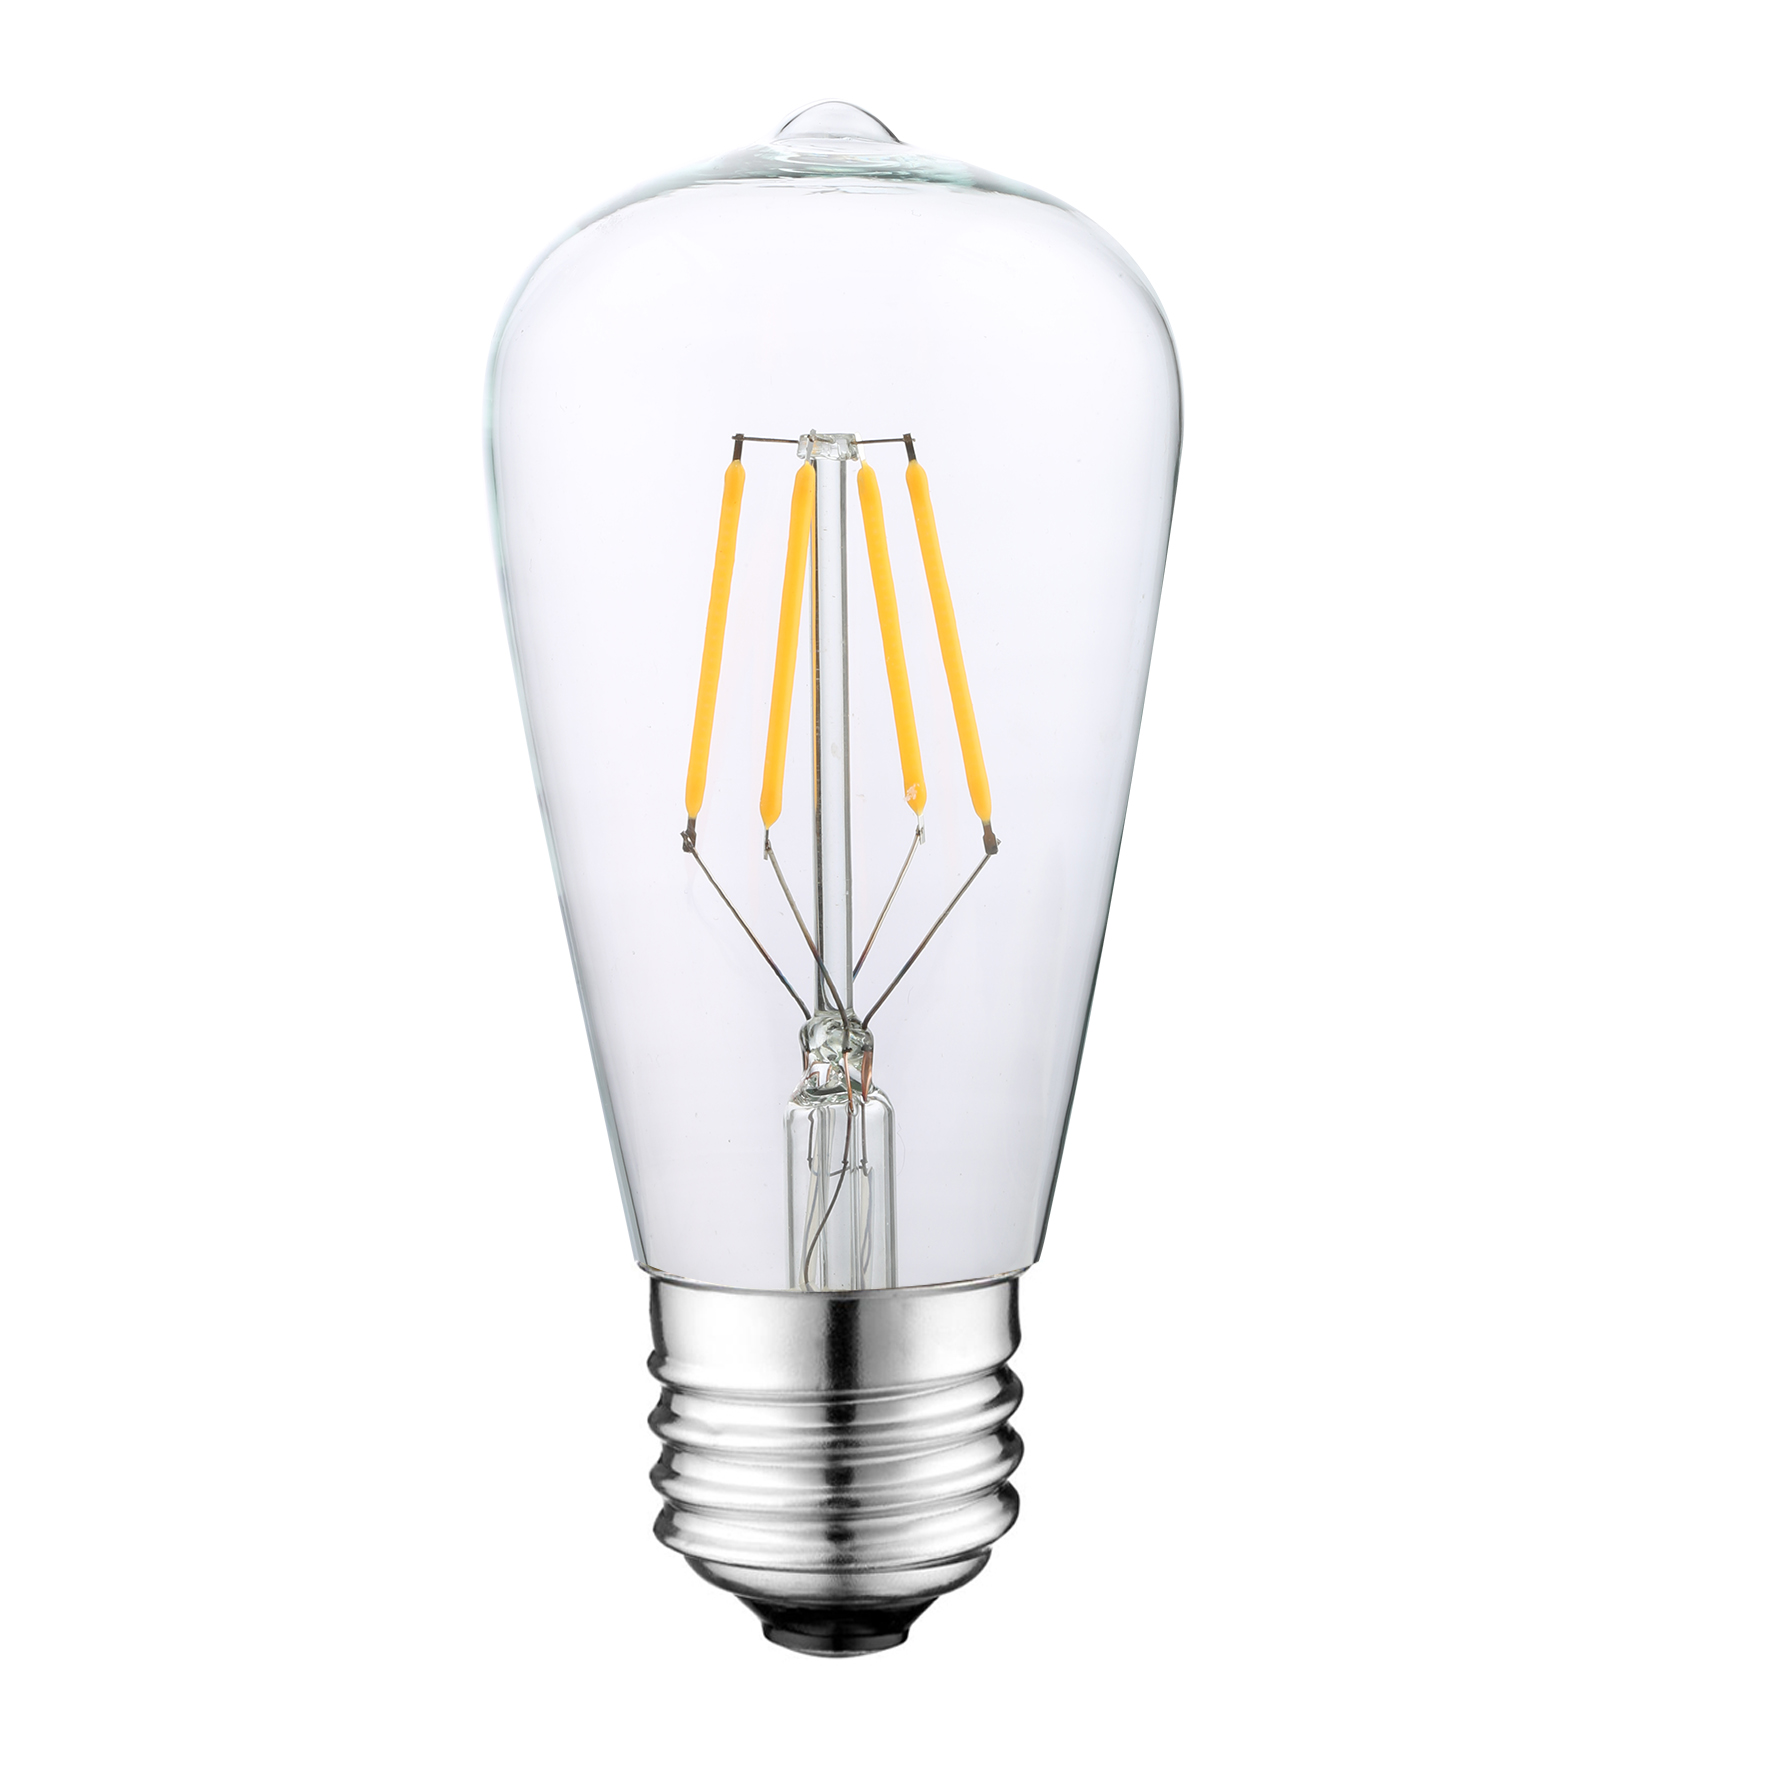 UL Listed ST64 LED Vintage light bulbs